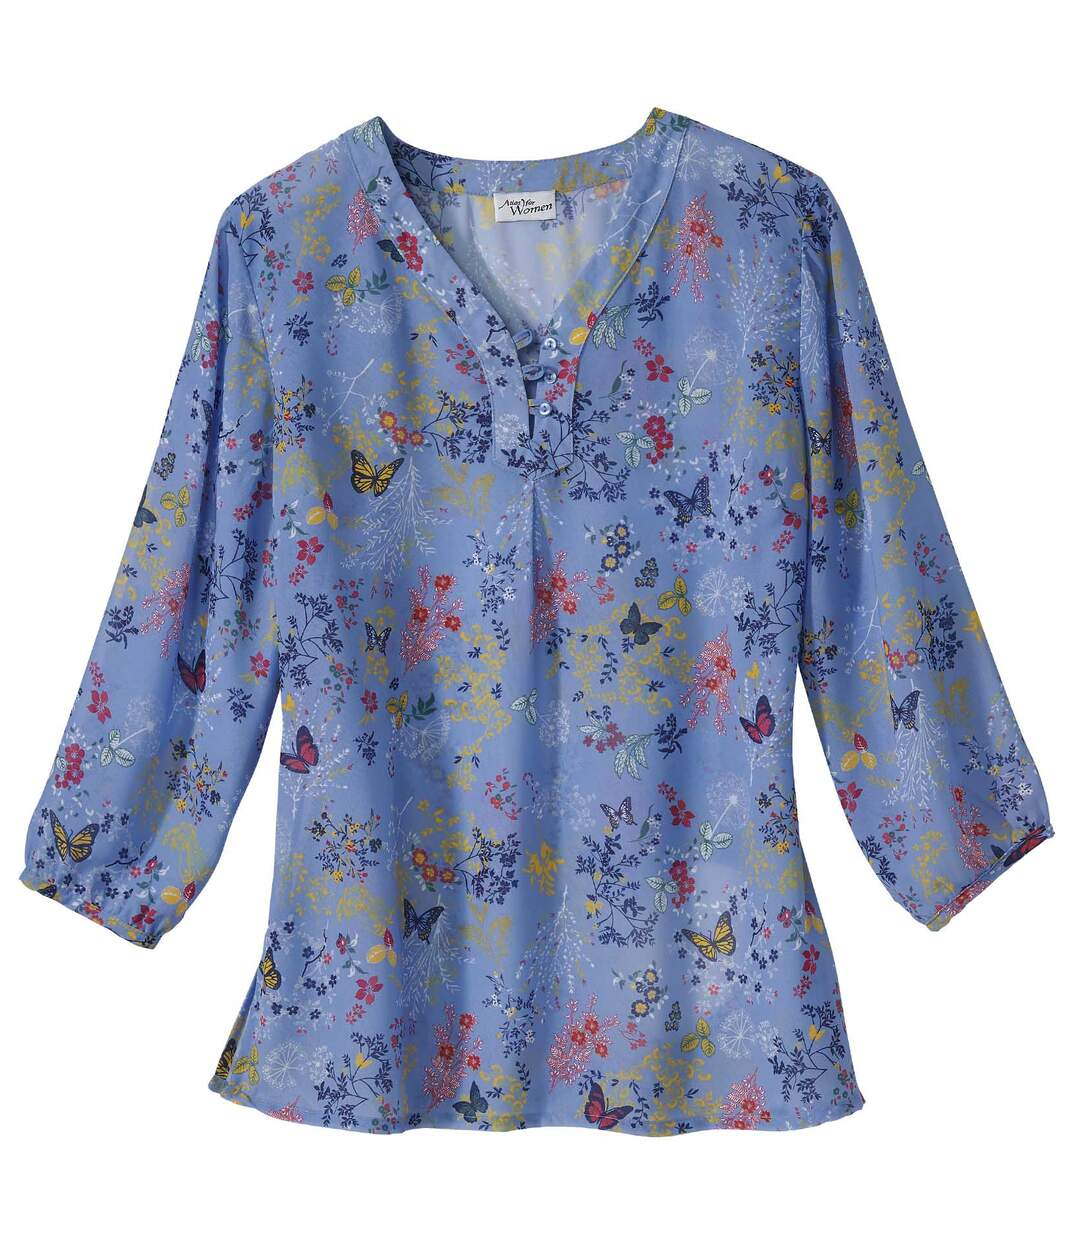 Mousselin-Bluse mit blumigem Muster